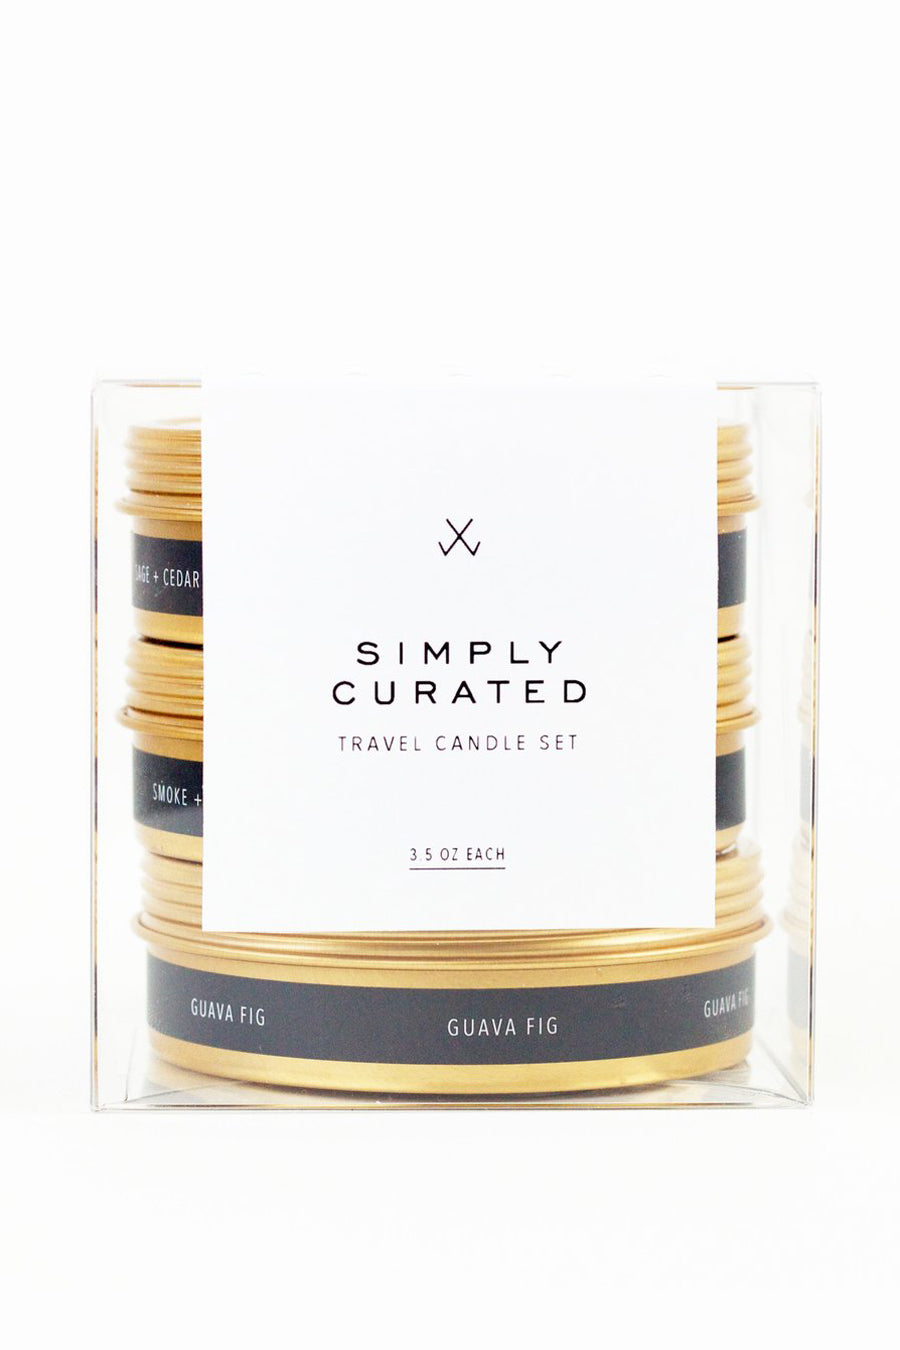 Simply Curated Travel Candle Set